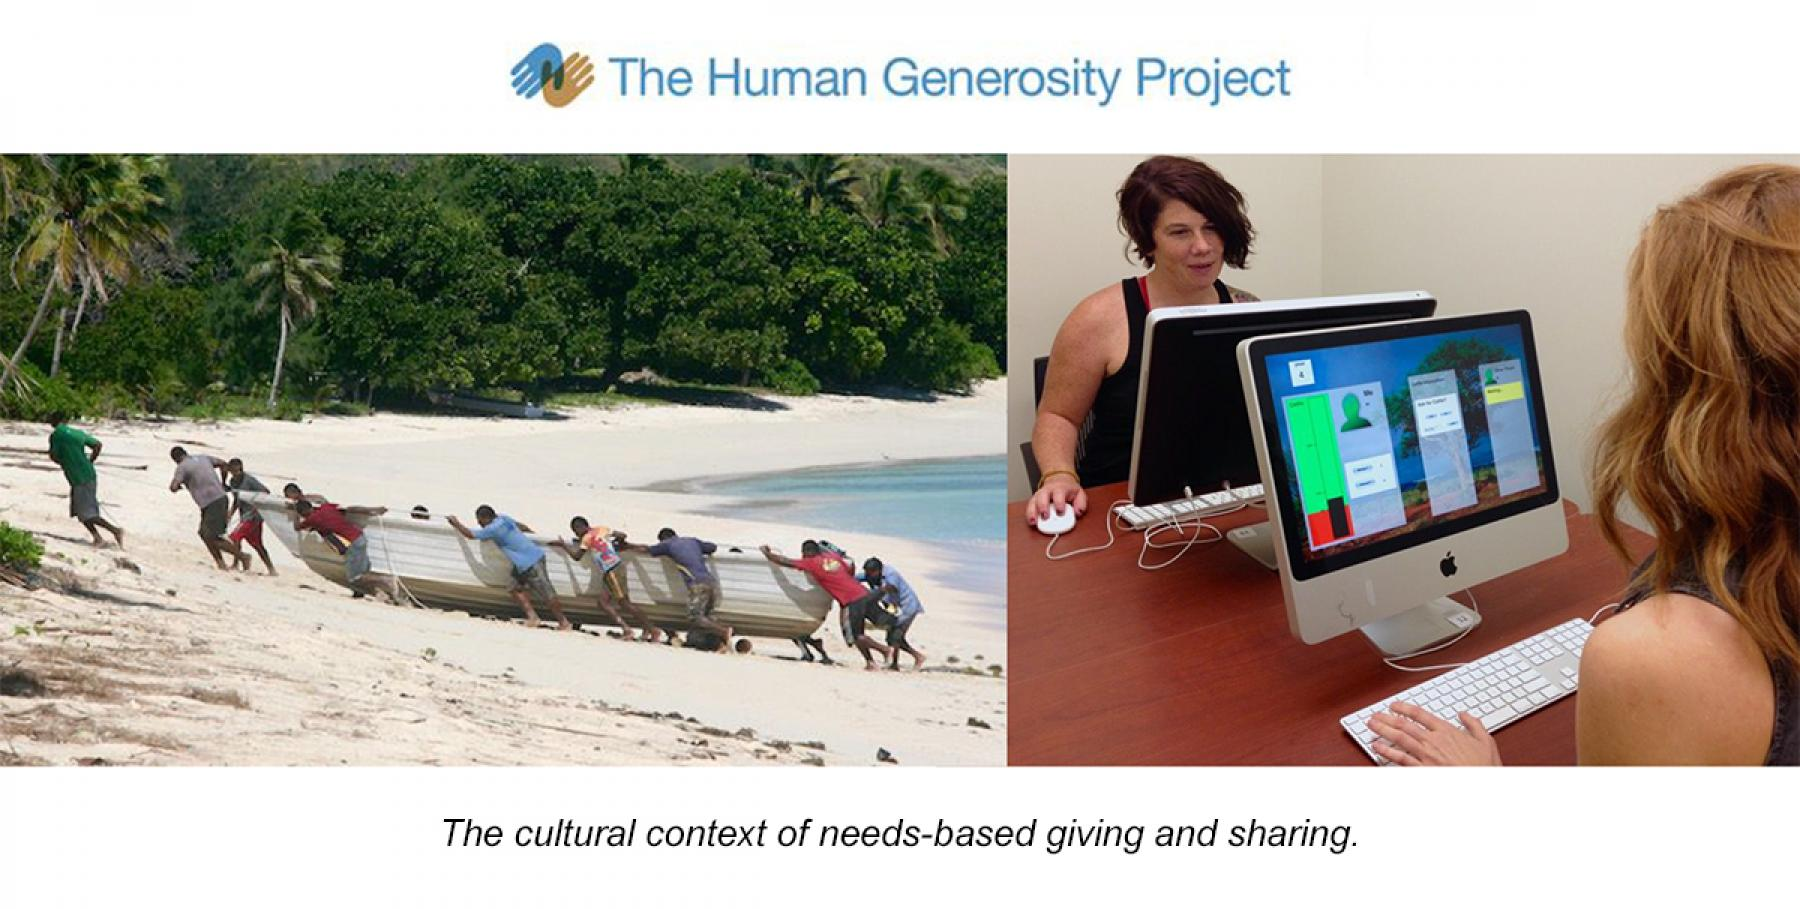 Human Generosity Project - The cultural context of needs-based giving and sharing